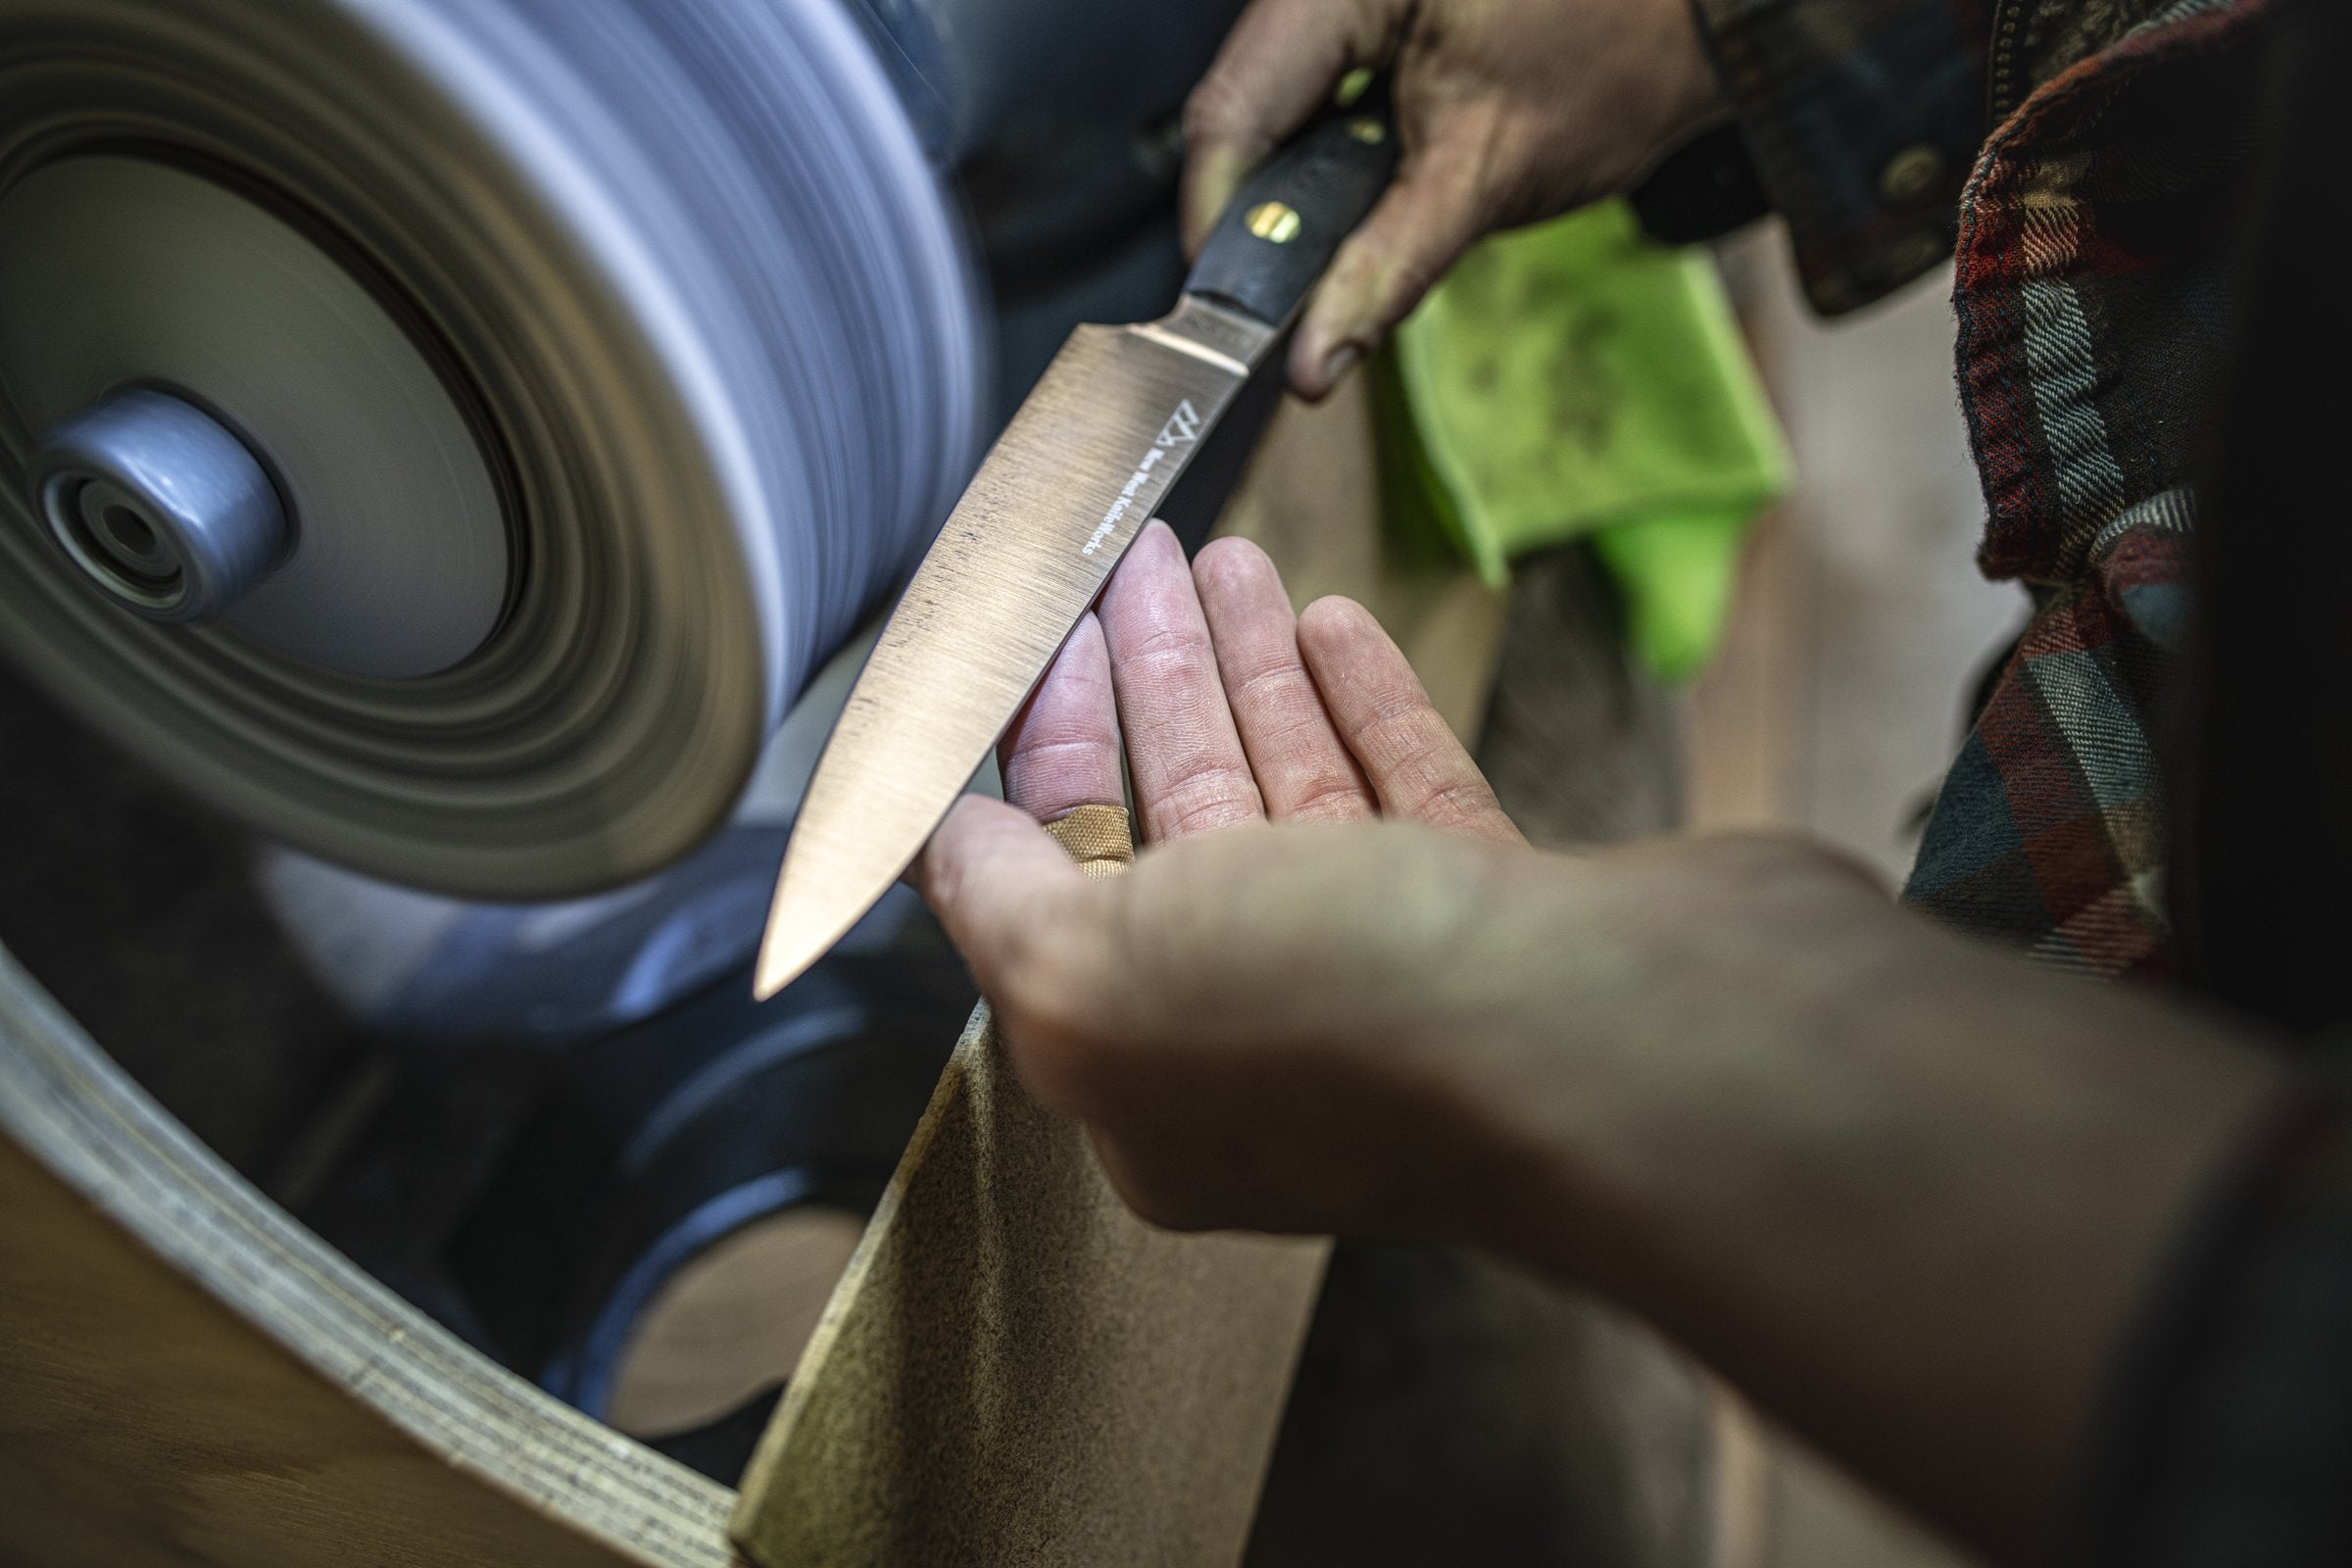 Kitchen knives made in America